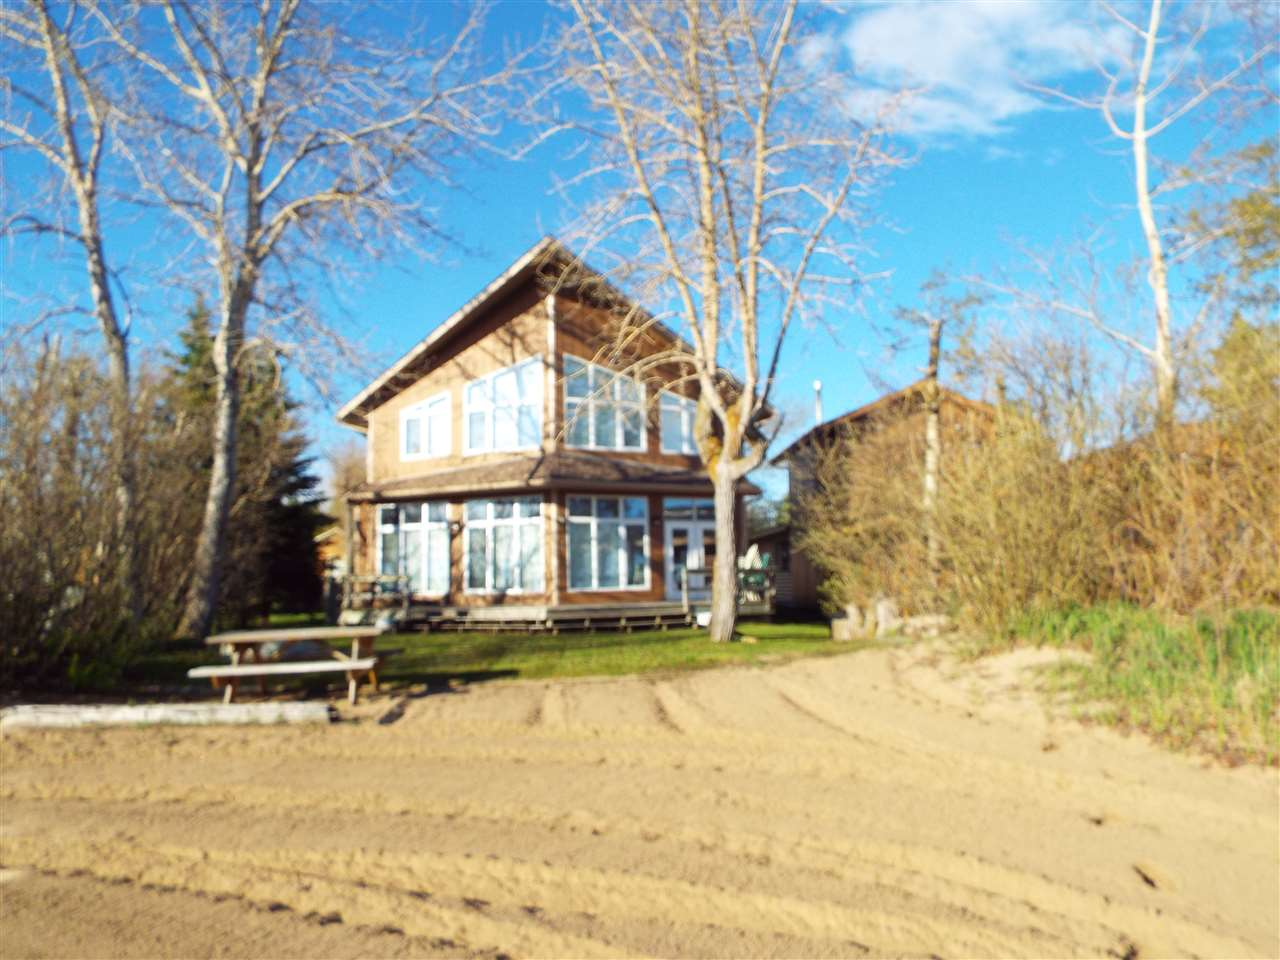 Sandy beaches and amazing sunsets! True LAKEFRONT at Pigeon Lake. Pavement all the way! Directly south of Thorsby on Hwy 778 to Sandholm Beach. Meticulously kept 6 bedroom year round chalet with all the amenities.  A lovely great room concept ideal for entertaining. 10 ft ceilings, gas fireplace, beautiful kitchen loaded with cabinets, separate family or TV room. Low maintenance linoleum in all high traffic areas. Carpeting throughout the upstairs. Total of 3 full bathrooms. Built on a 3 ft concrete crawl space in 2002. Large front and rear decks. Fully serviced with a drilled well, natural gas, electricity and MUNICIPAL sewer. A huge lot with room for a triple garage. Located on the north shore of Pigeon Lake, within 1 hour of Edmonton. BRING THE FAMILY, & BRING THE TOYS! LET THE GOOD TIMES ROLL!